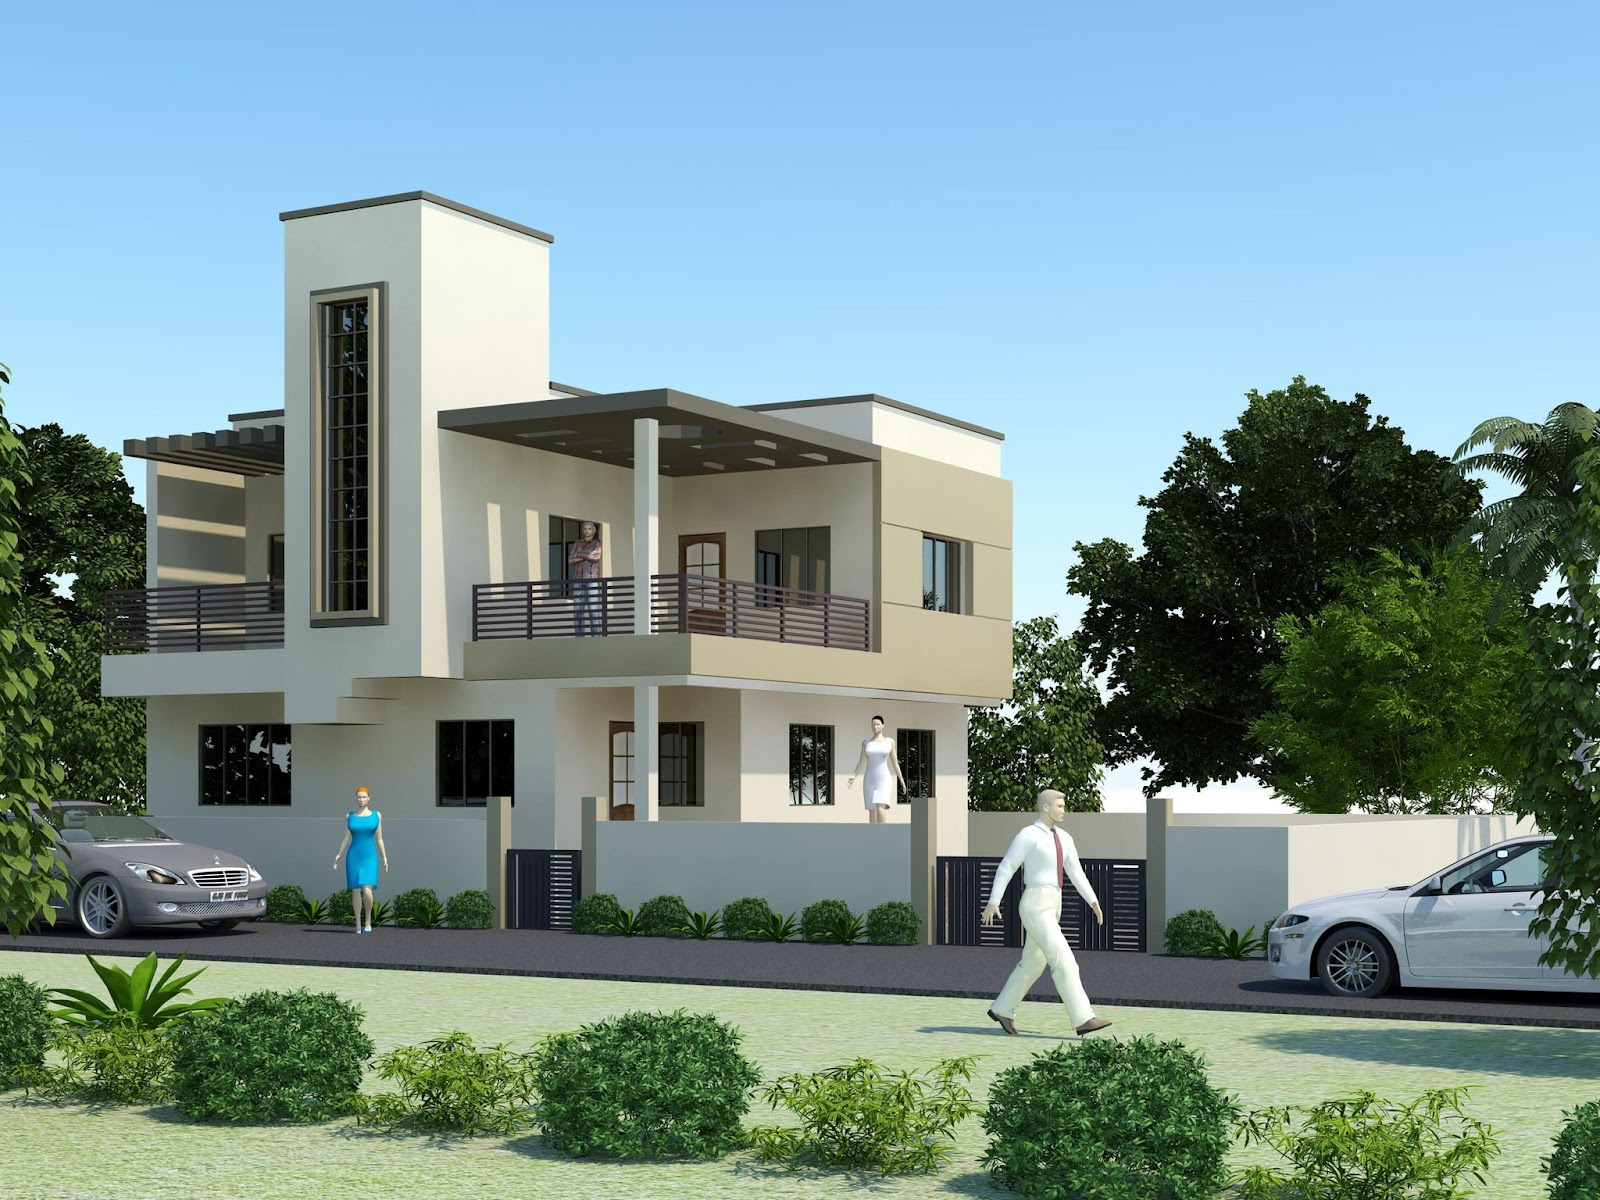 new home designs latest modern homes exterior designs front views